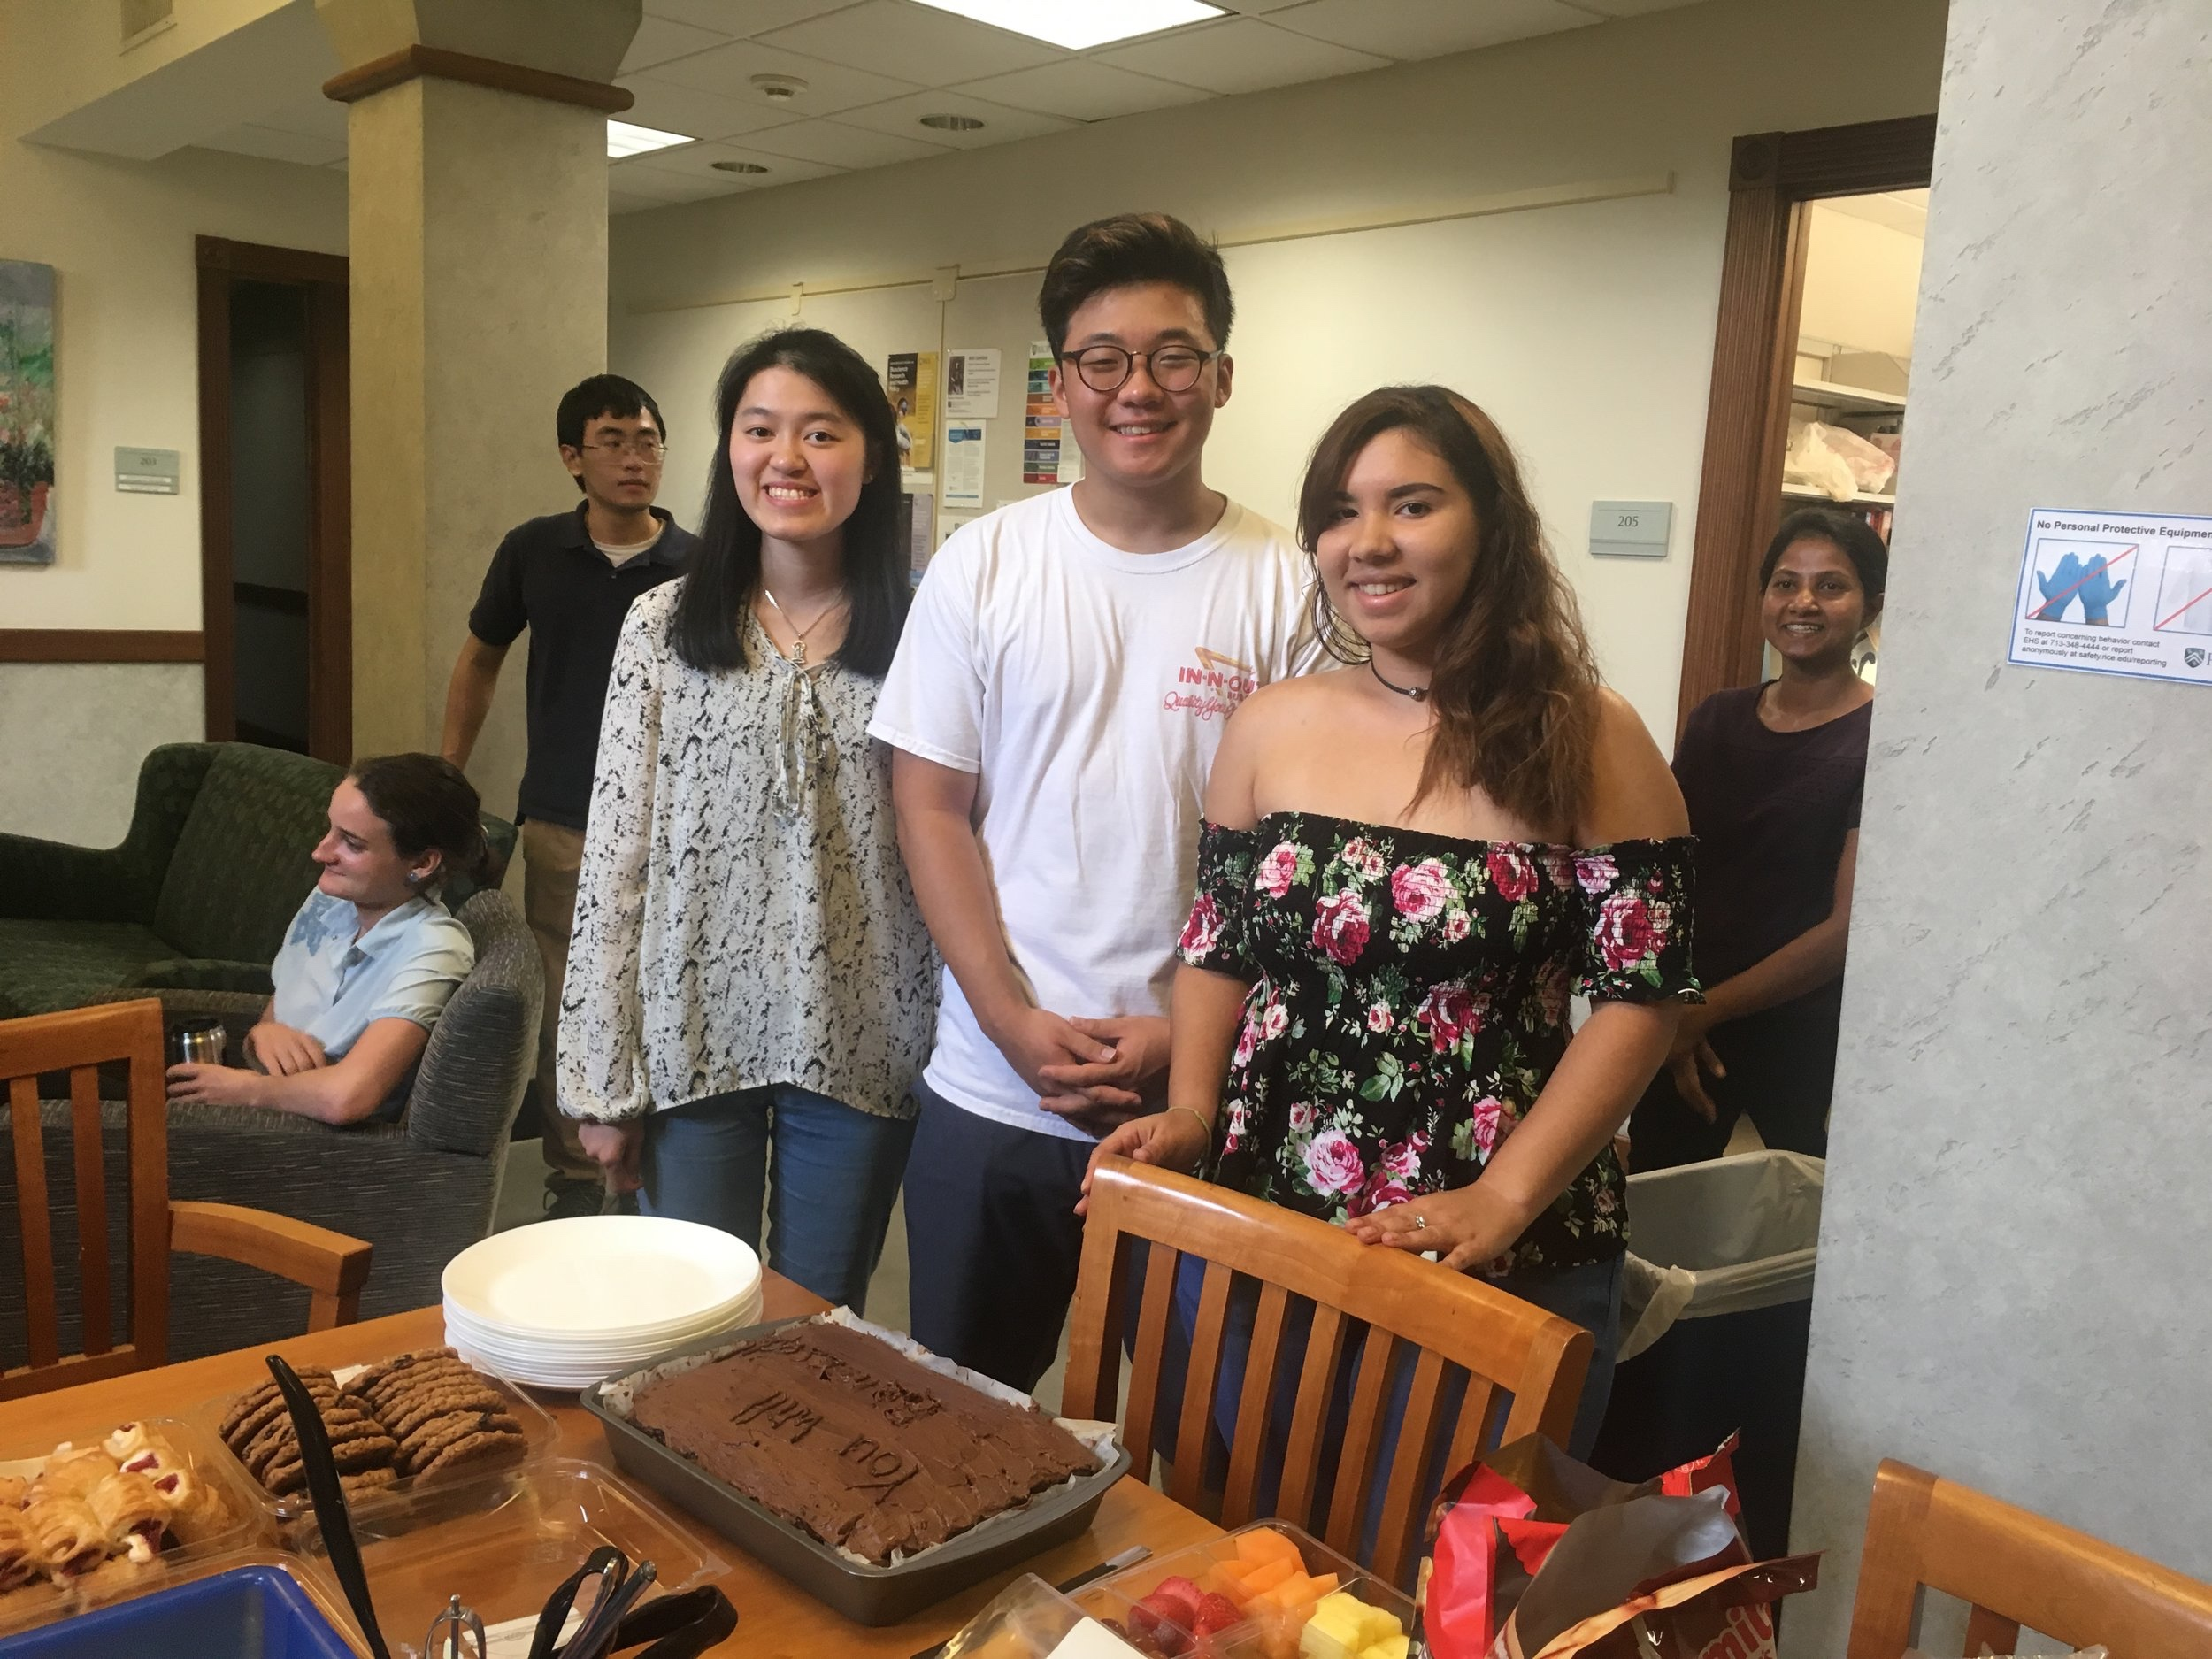 A celebration in honor of our summer students who have so kindly graced us with their presence over the past ten weeks. We will miss all of you!